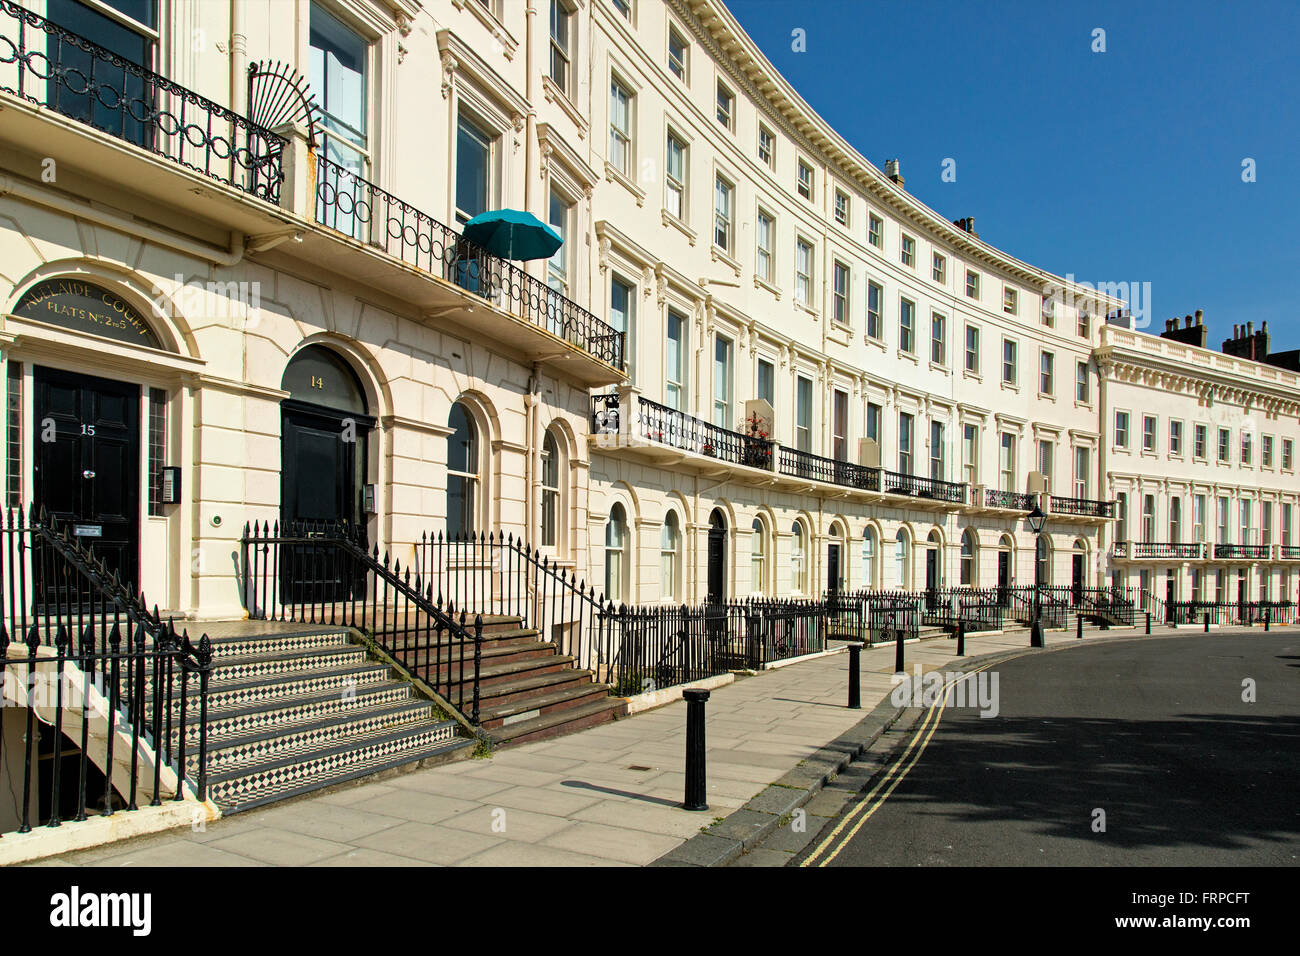 Swell Terraced Homes In Brighton And Hove Uk Stock Photo Royalty Free Inspirational Interior Design Netriciaus